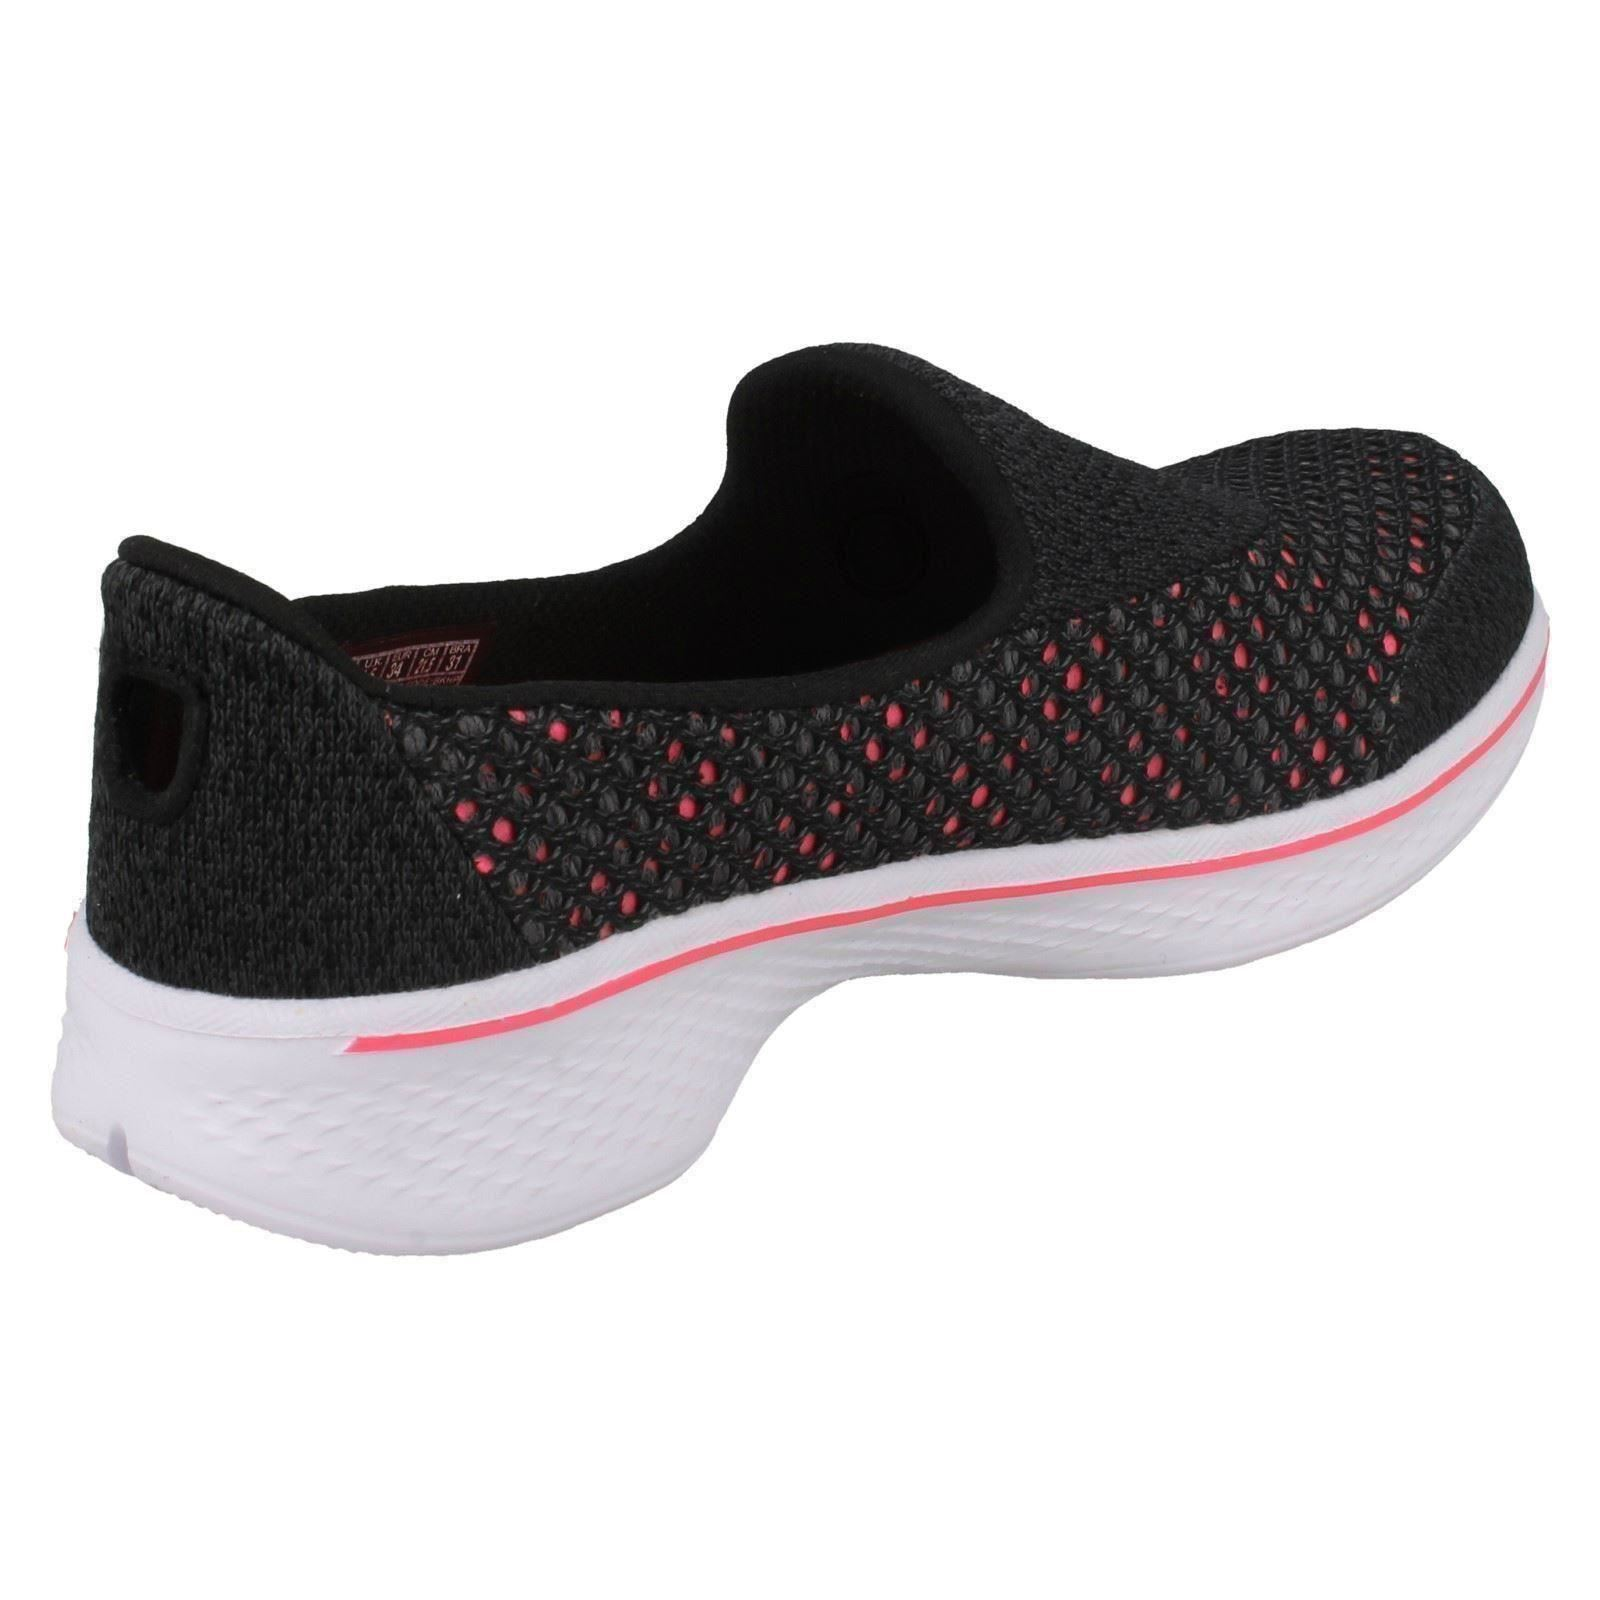 Details about Girls Skechers Go Walk 4 Kindle 81118 Flats With Mesh Detail